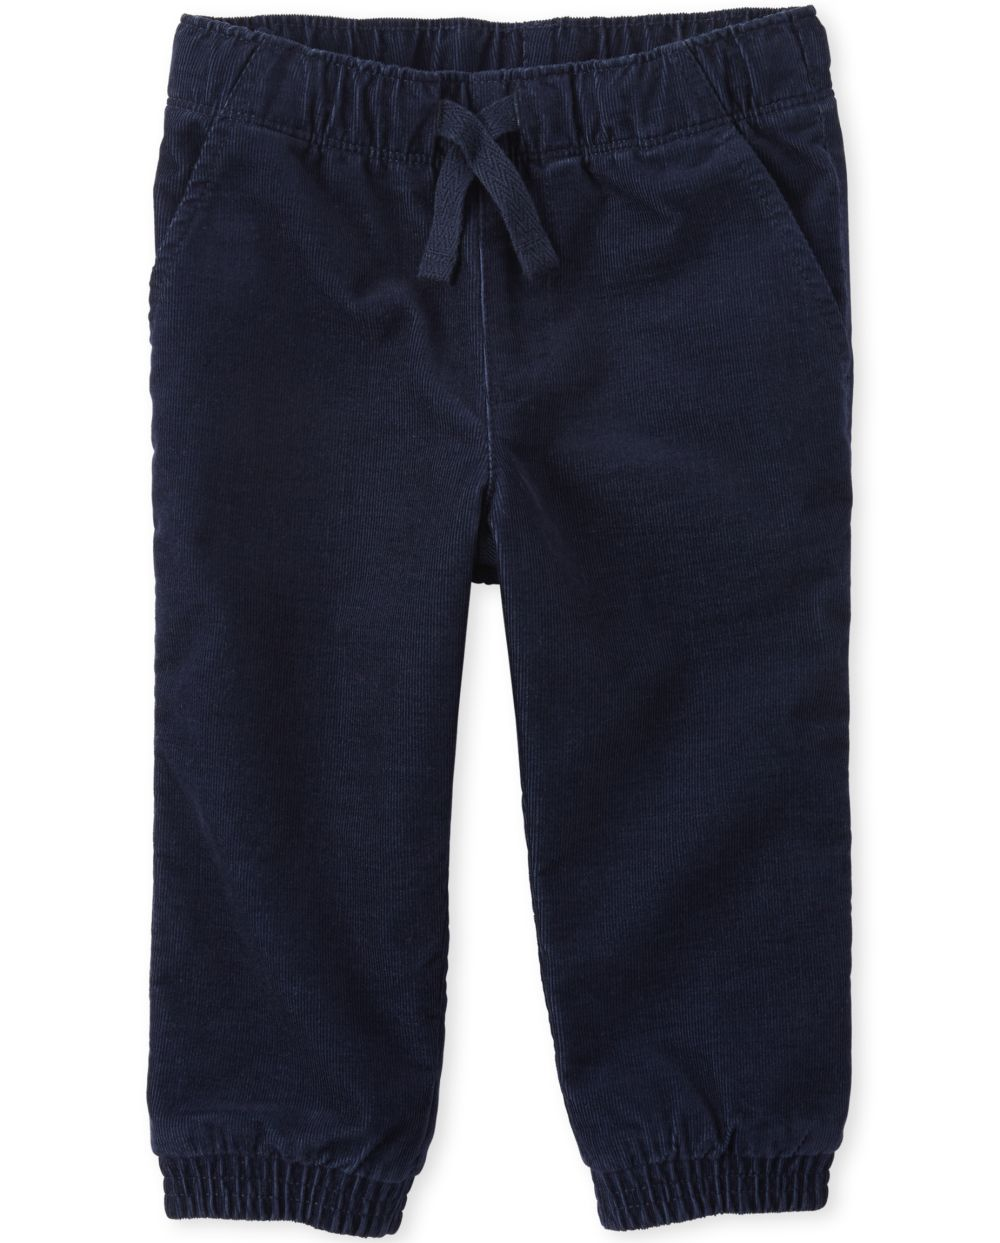 Baby And Toddler Boys Corduroy Pull On Jogger Pants